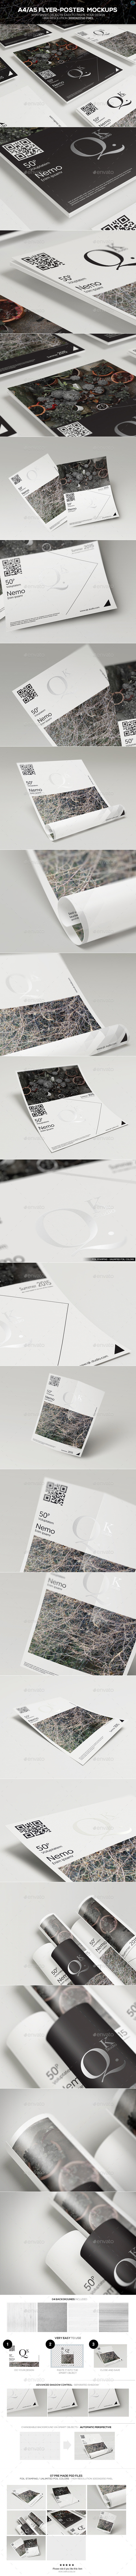 GraphicRiver A4 A5 Poster-Flyer Mockups 11641673